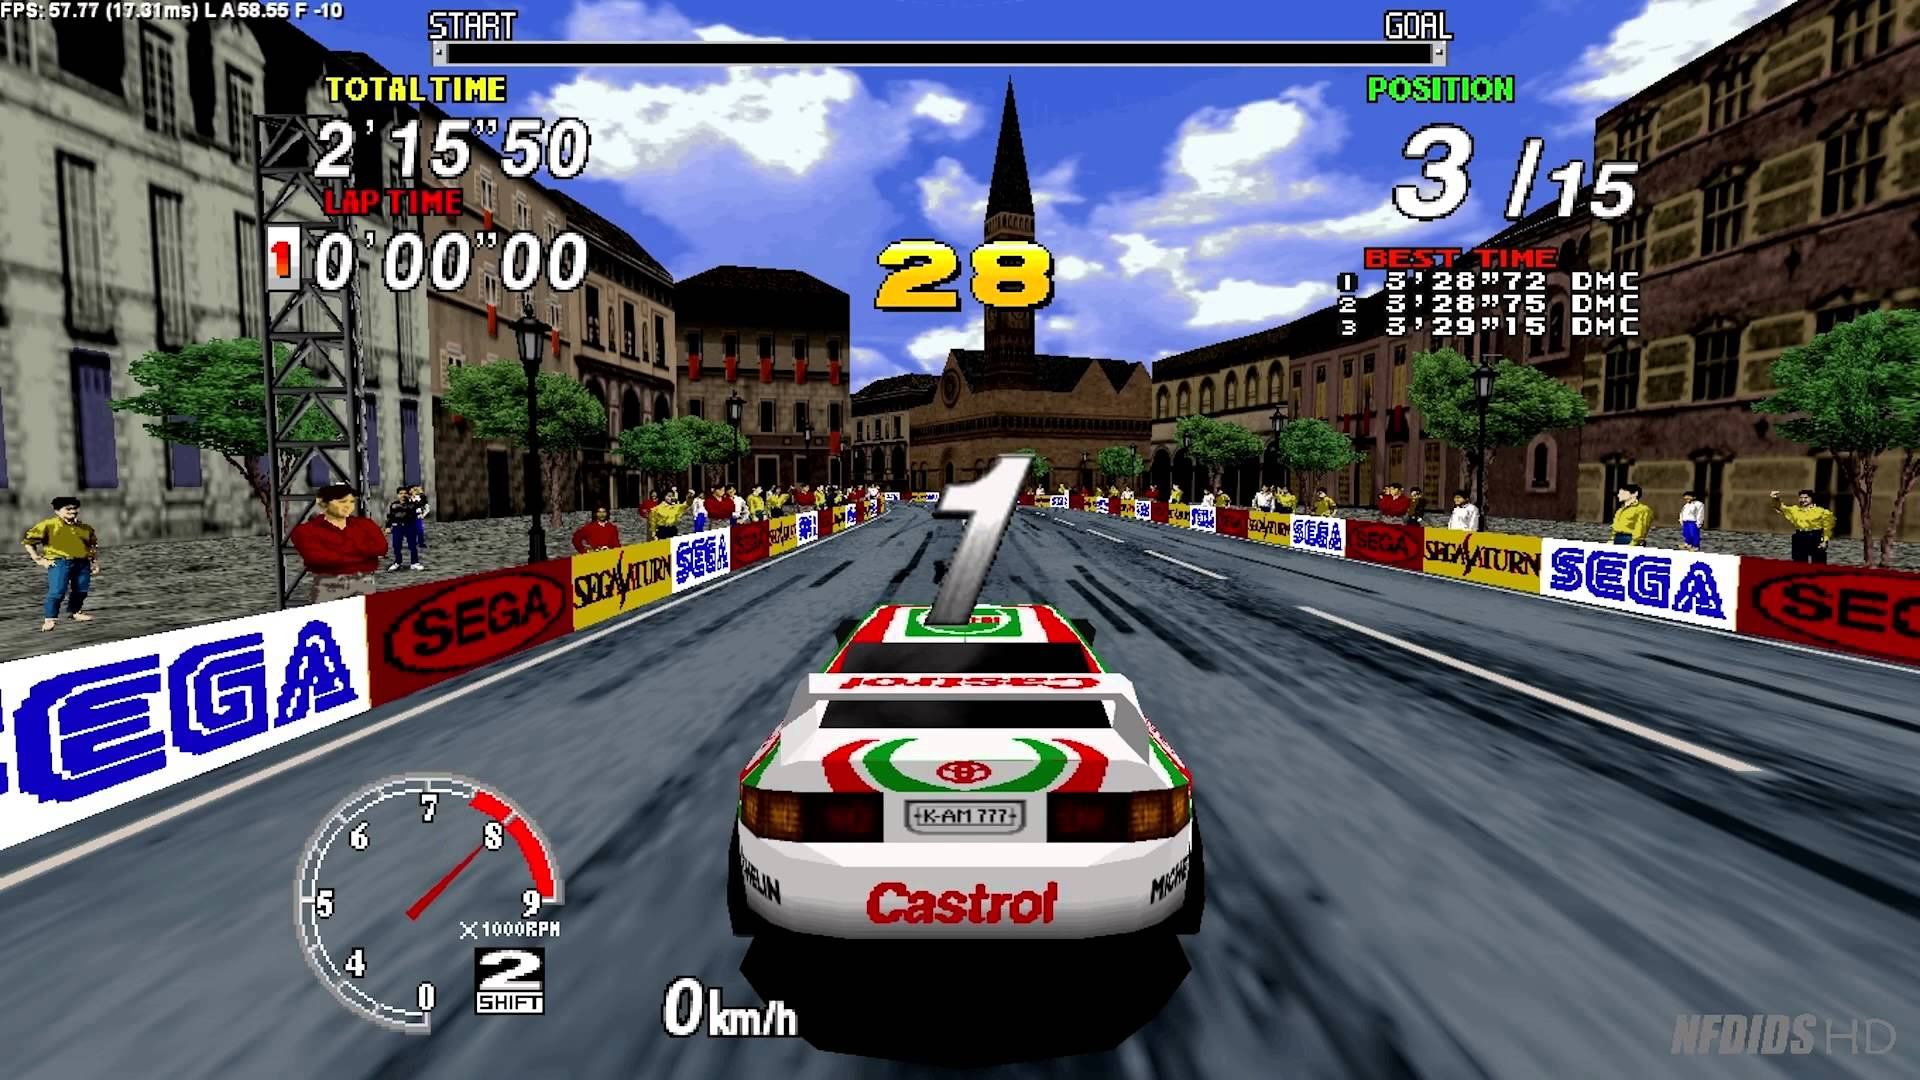 Sega Rally Championship 1995 Arcade : Sega Model 2 Emulator 1.0 (Logitech G25 manual) - YouTube